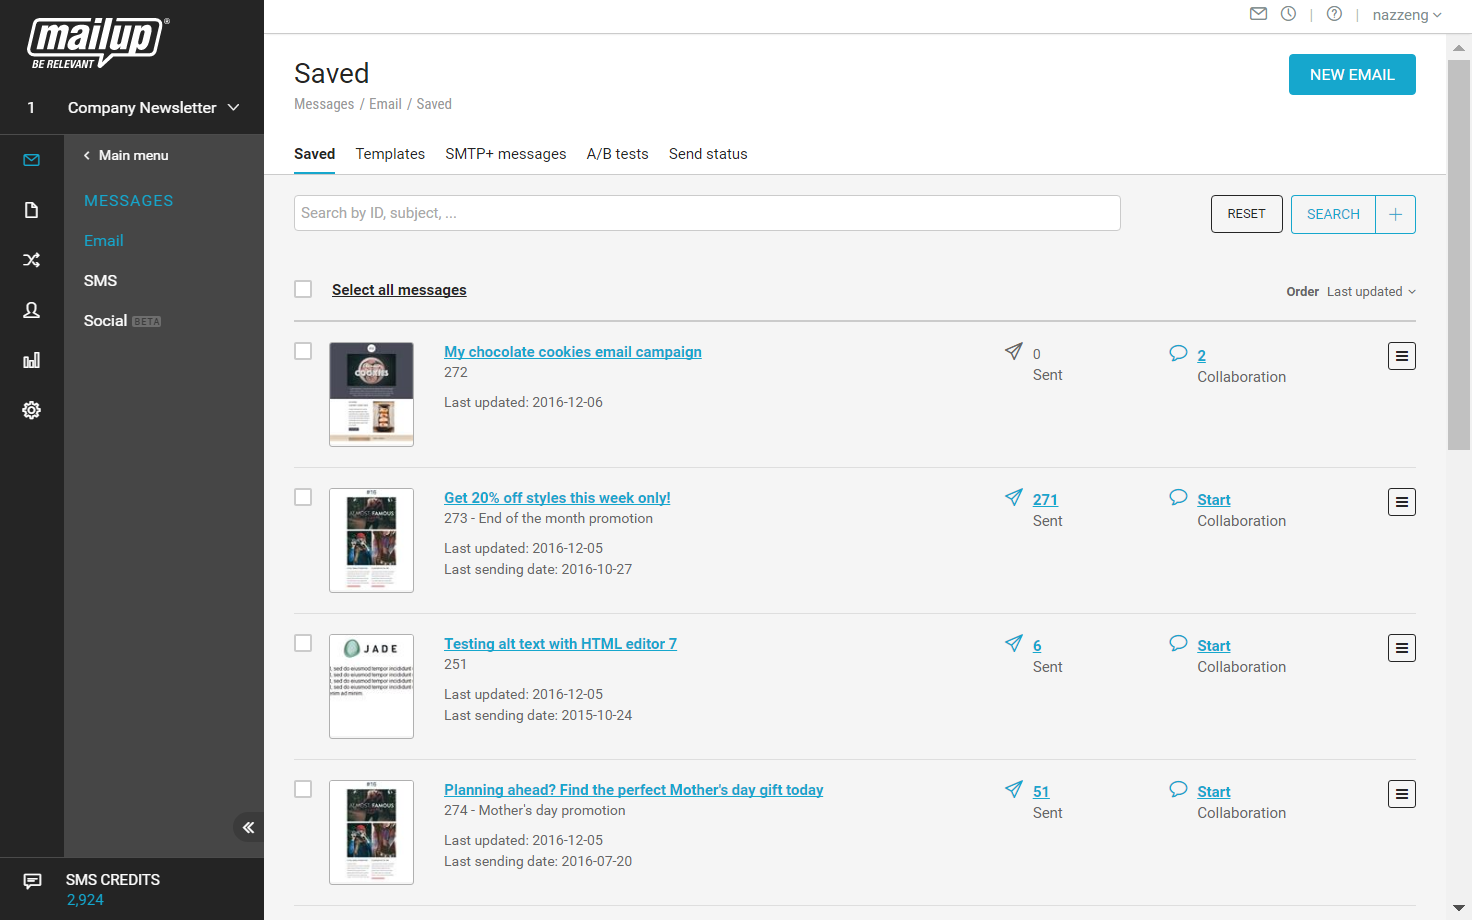 Saved messages, from here users can edit, test, check-up or send campaigns.